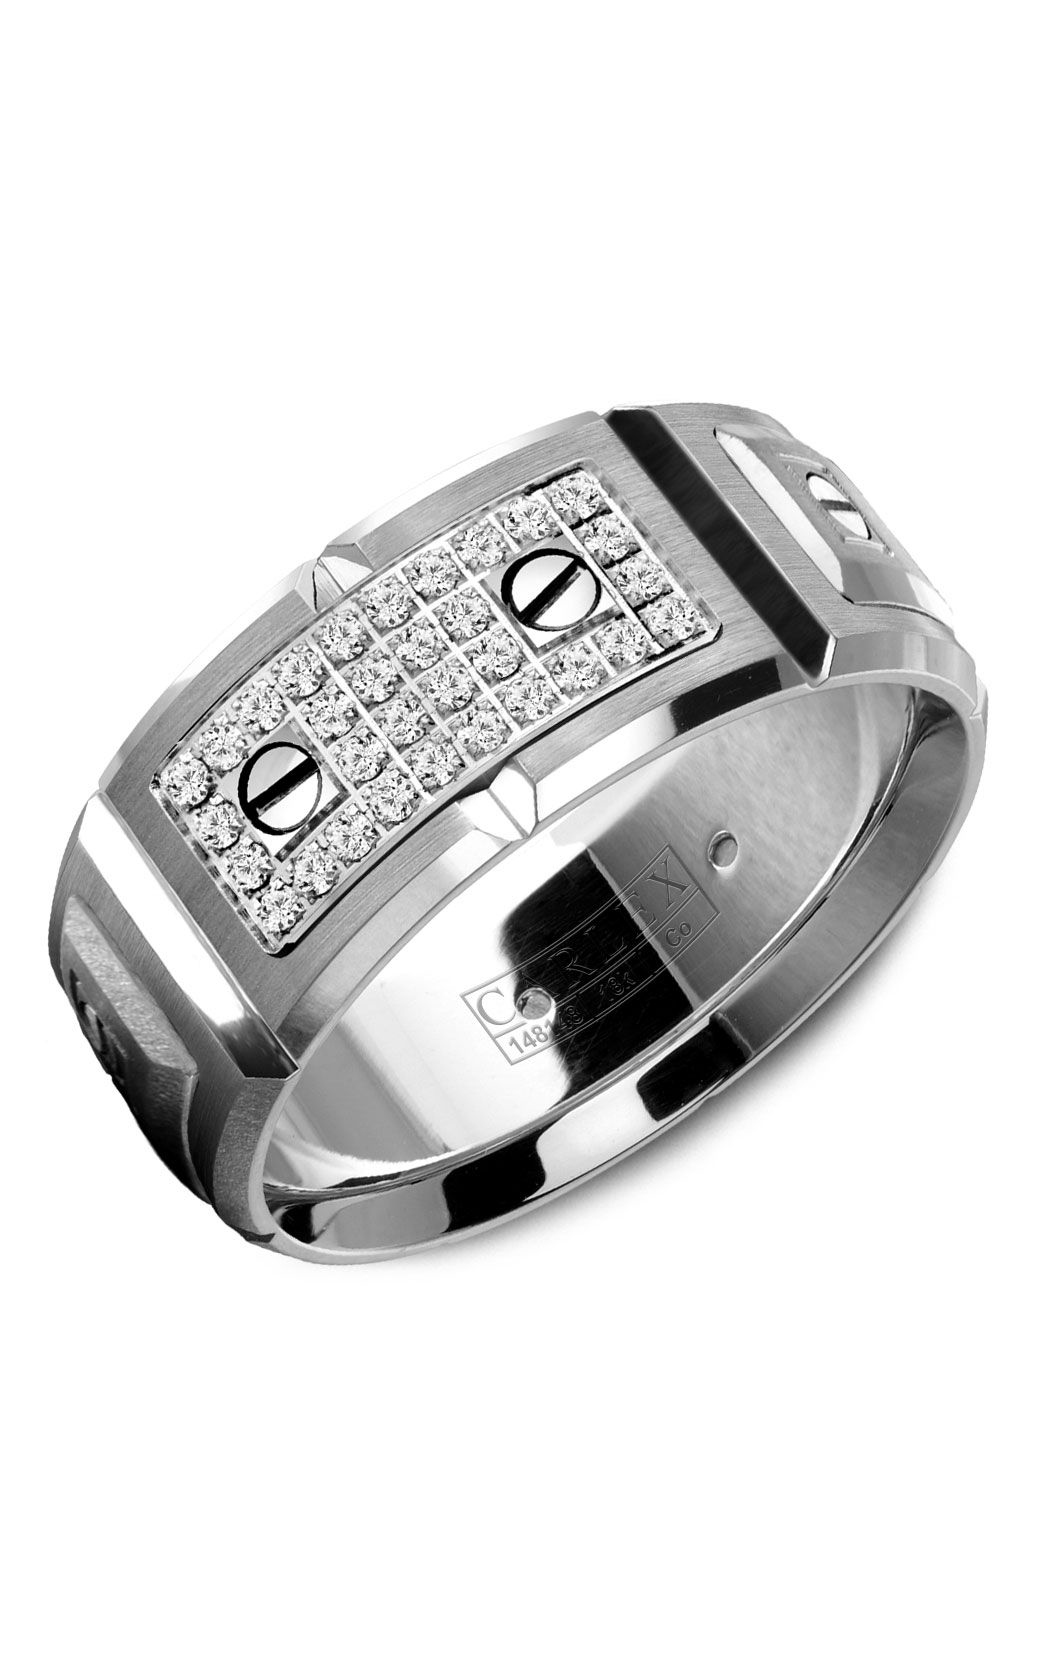 Carlex Sport Men's Wedding Band WB-9793WC product image